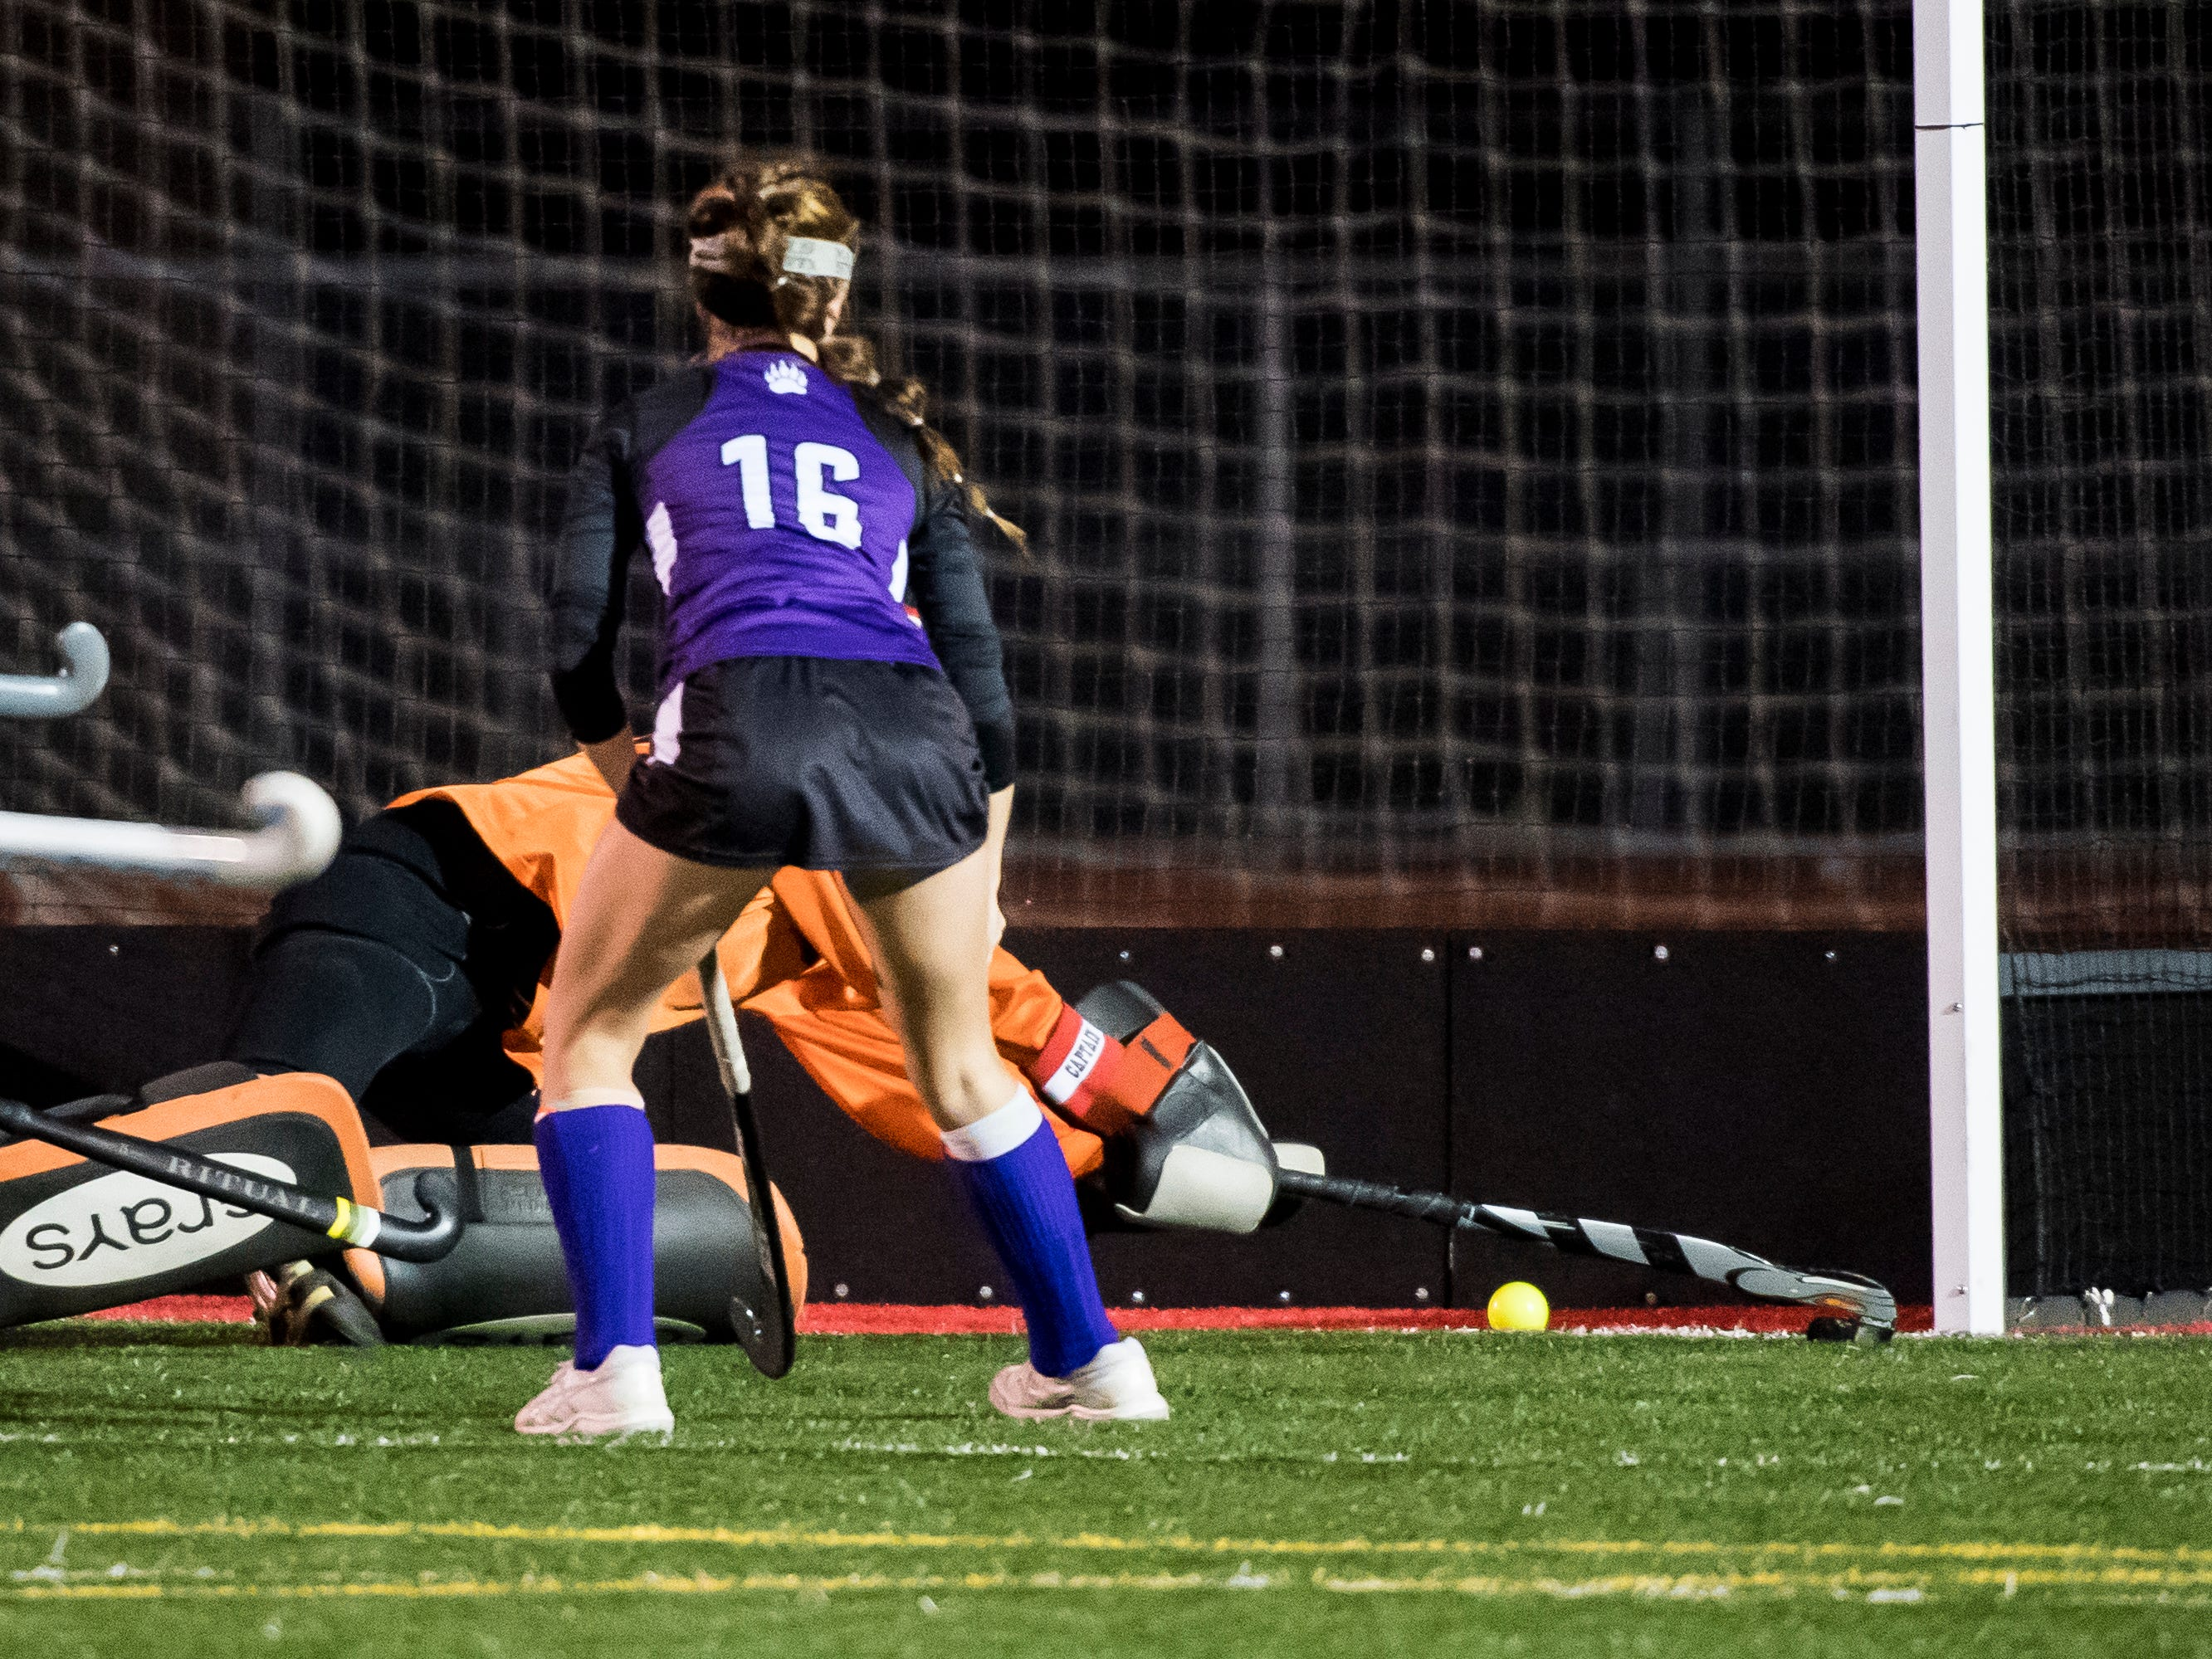 A shot from Northern gets past South Western goal keeper Aunnie Hacker during a PIAA District III first round game at Bermudian Springs High School on Wednesday, October 24, 2018. The Mustangs fell 4-2.